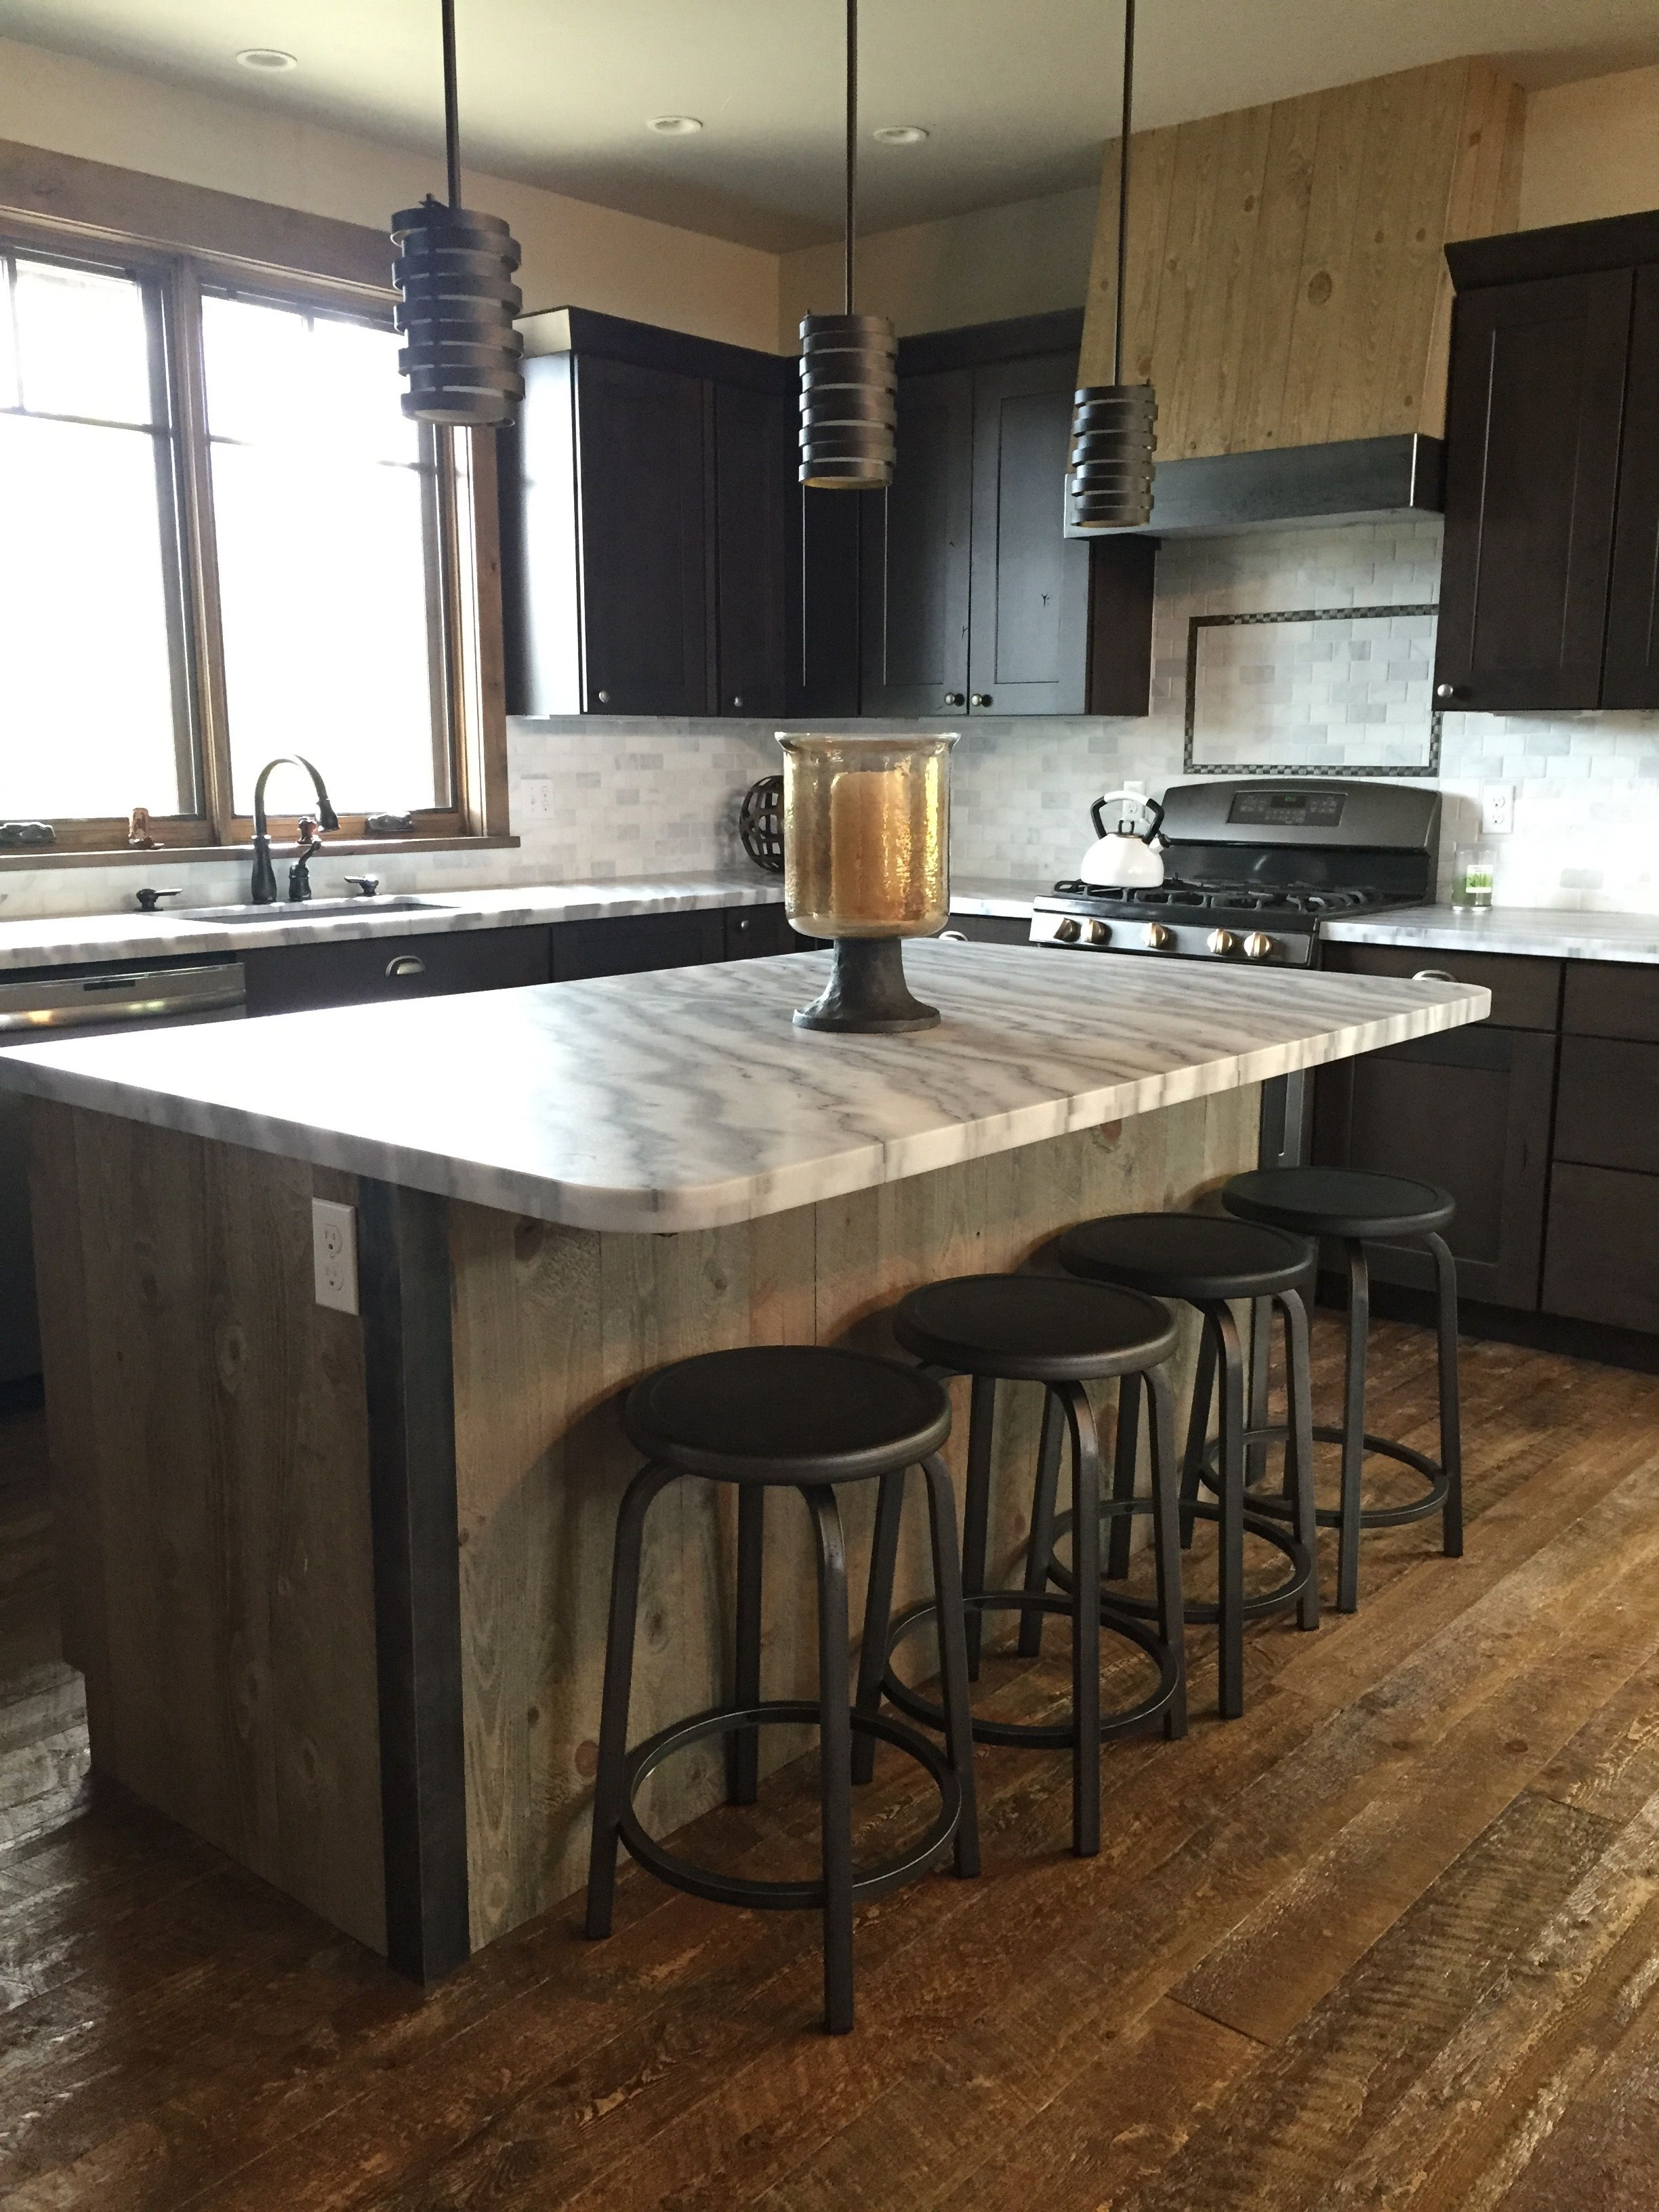 Kitchen Island Wrapped In Ghost Wood Kitchen Islands For Sale